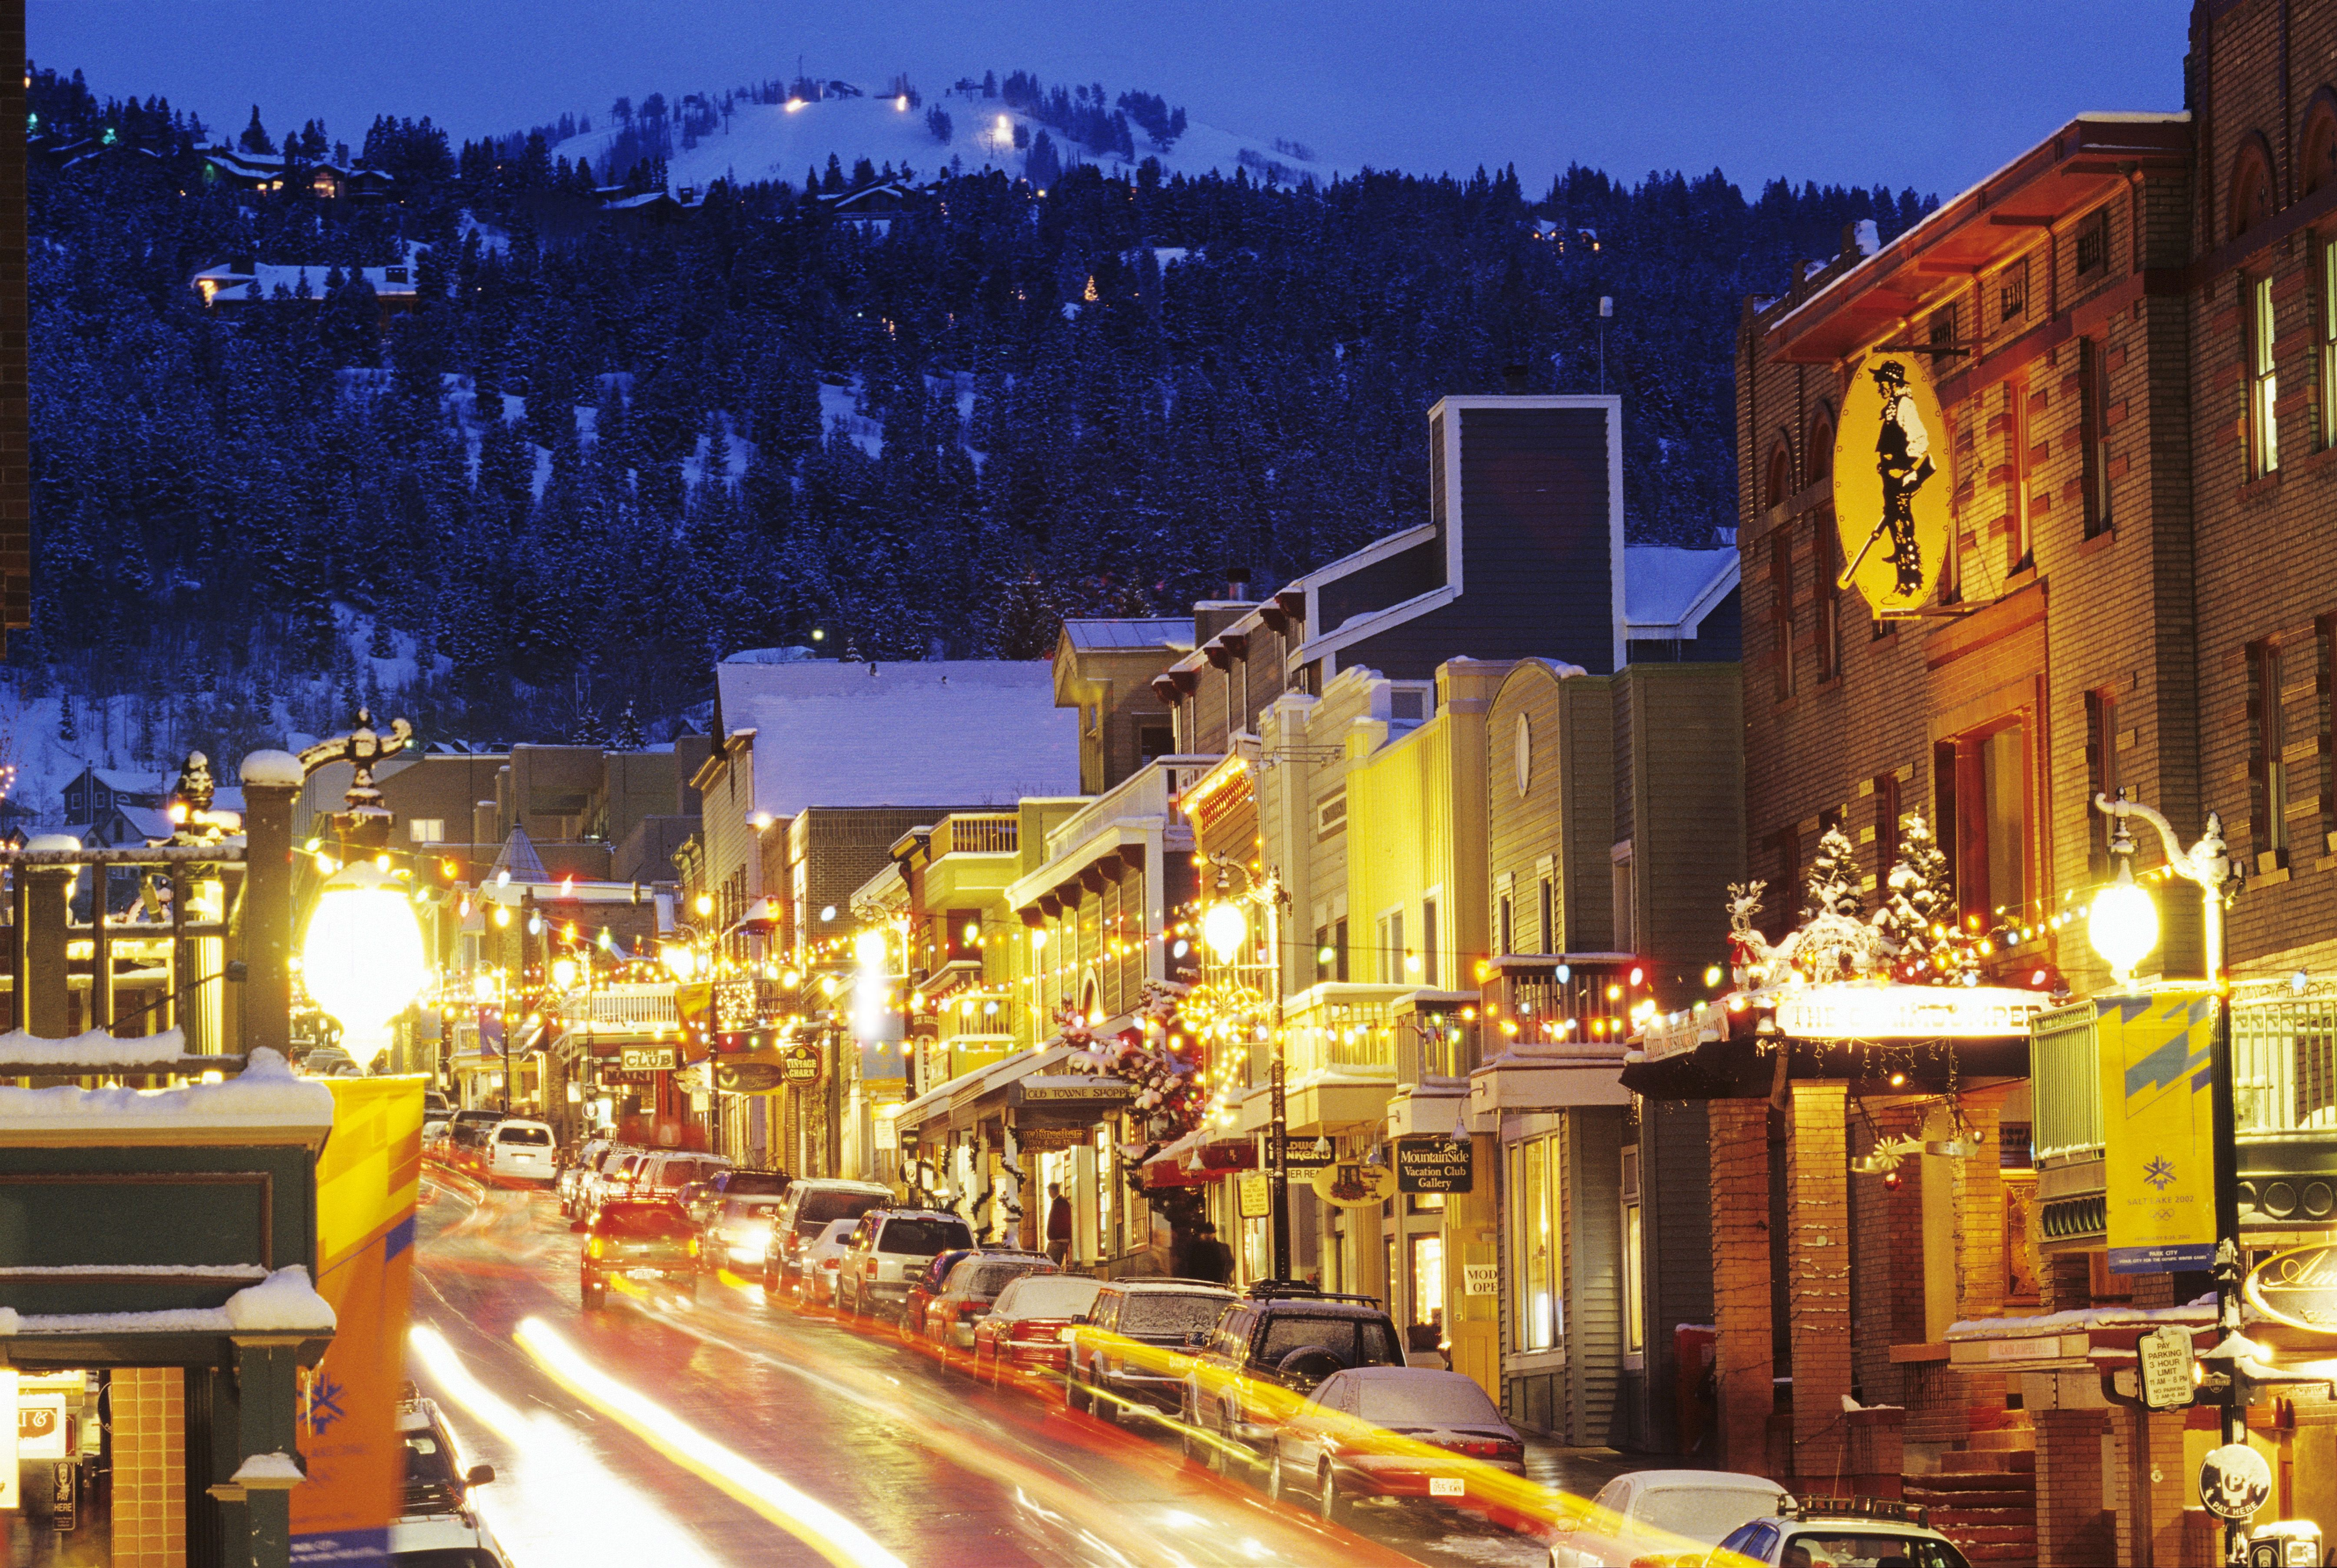 Historic Main Street In Downtown Parkcity Winter